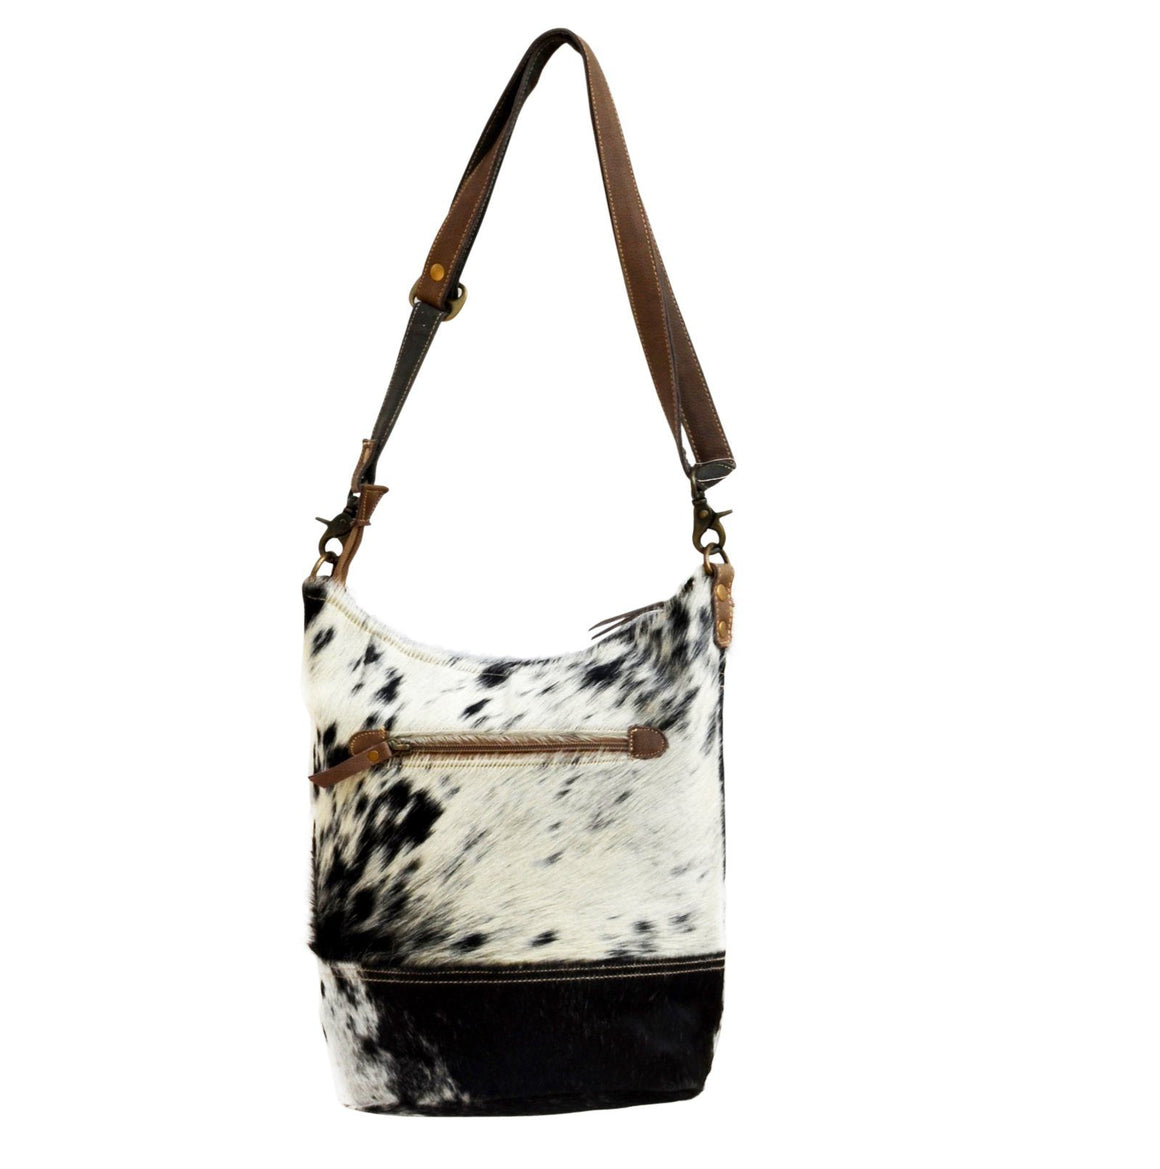 OVAL COWHIDE TOTE BAG Philbee Interiors